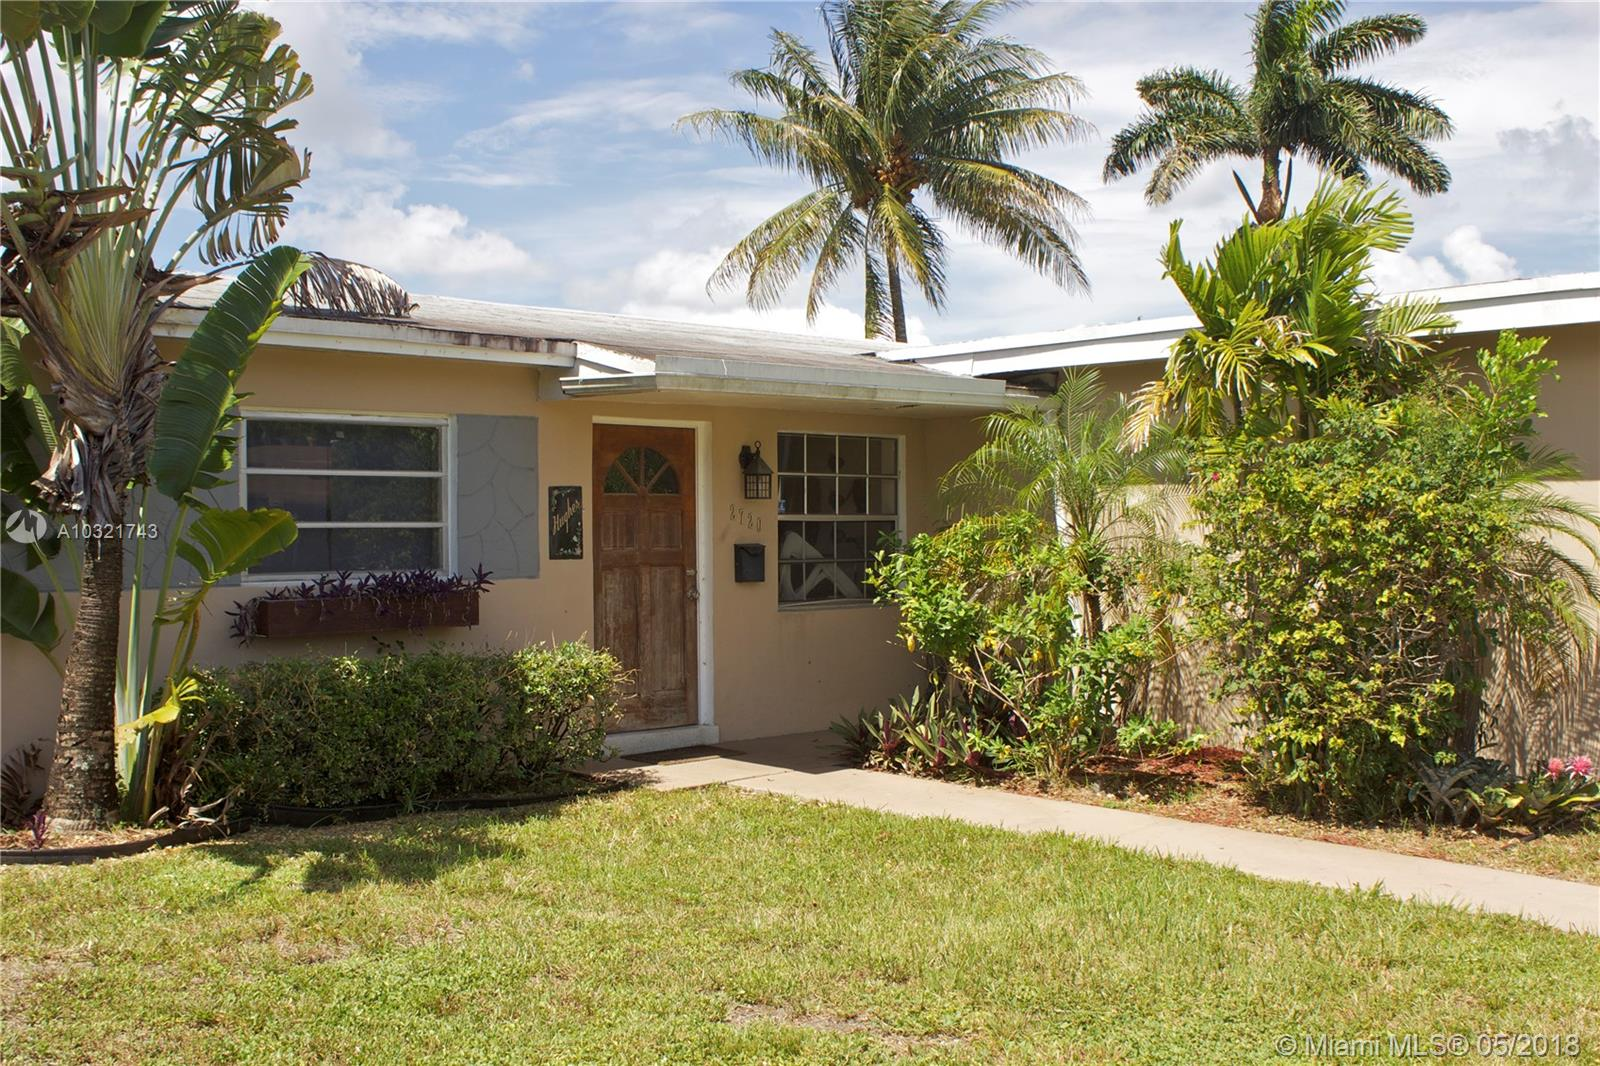 2720 SW 19th St - Fort Lauderdale, Florida